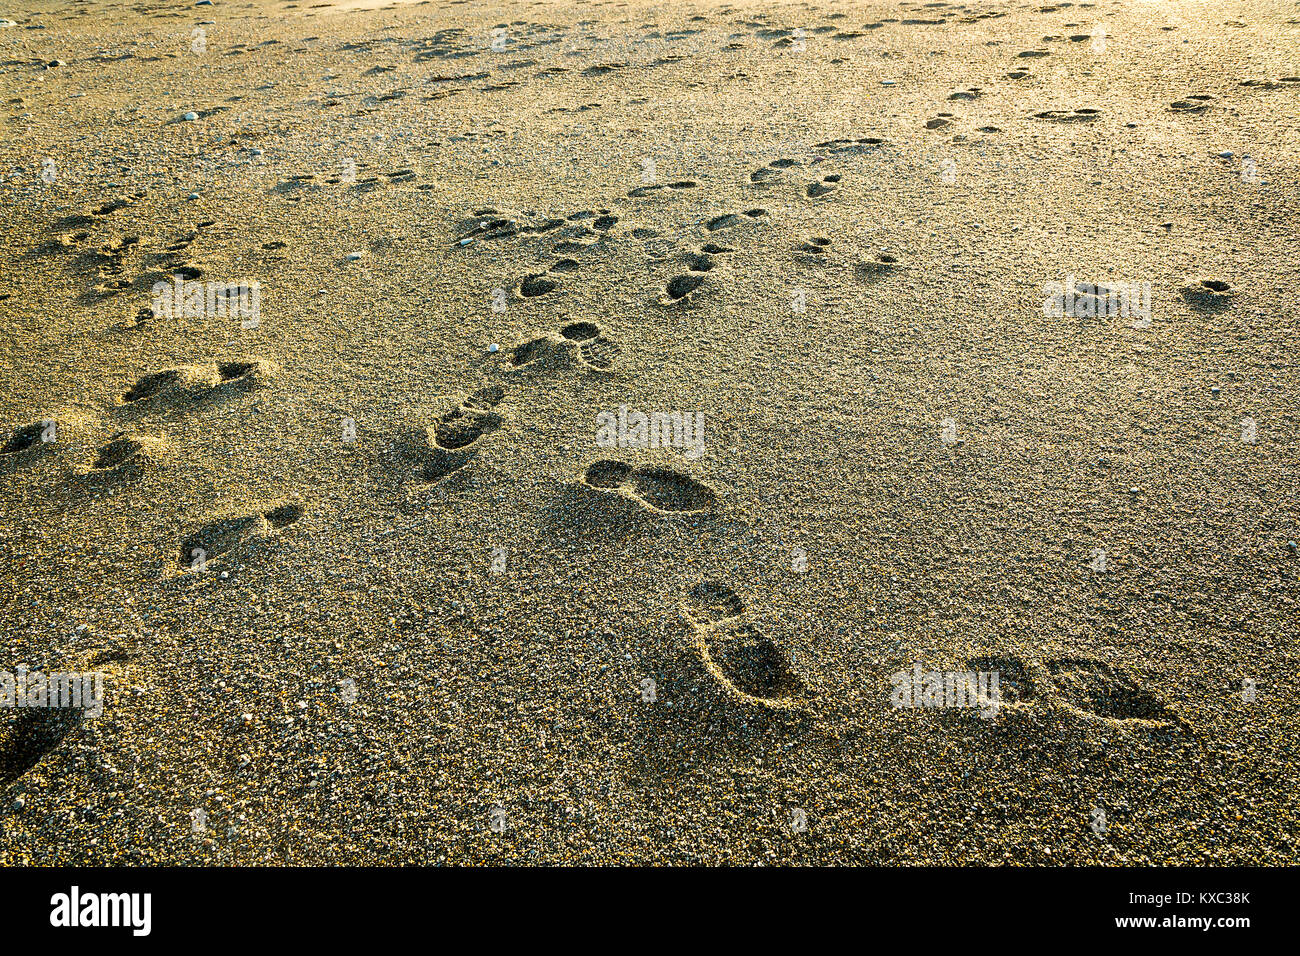 Footsteps on a sandy beach - Stock Image